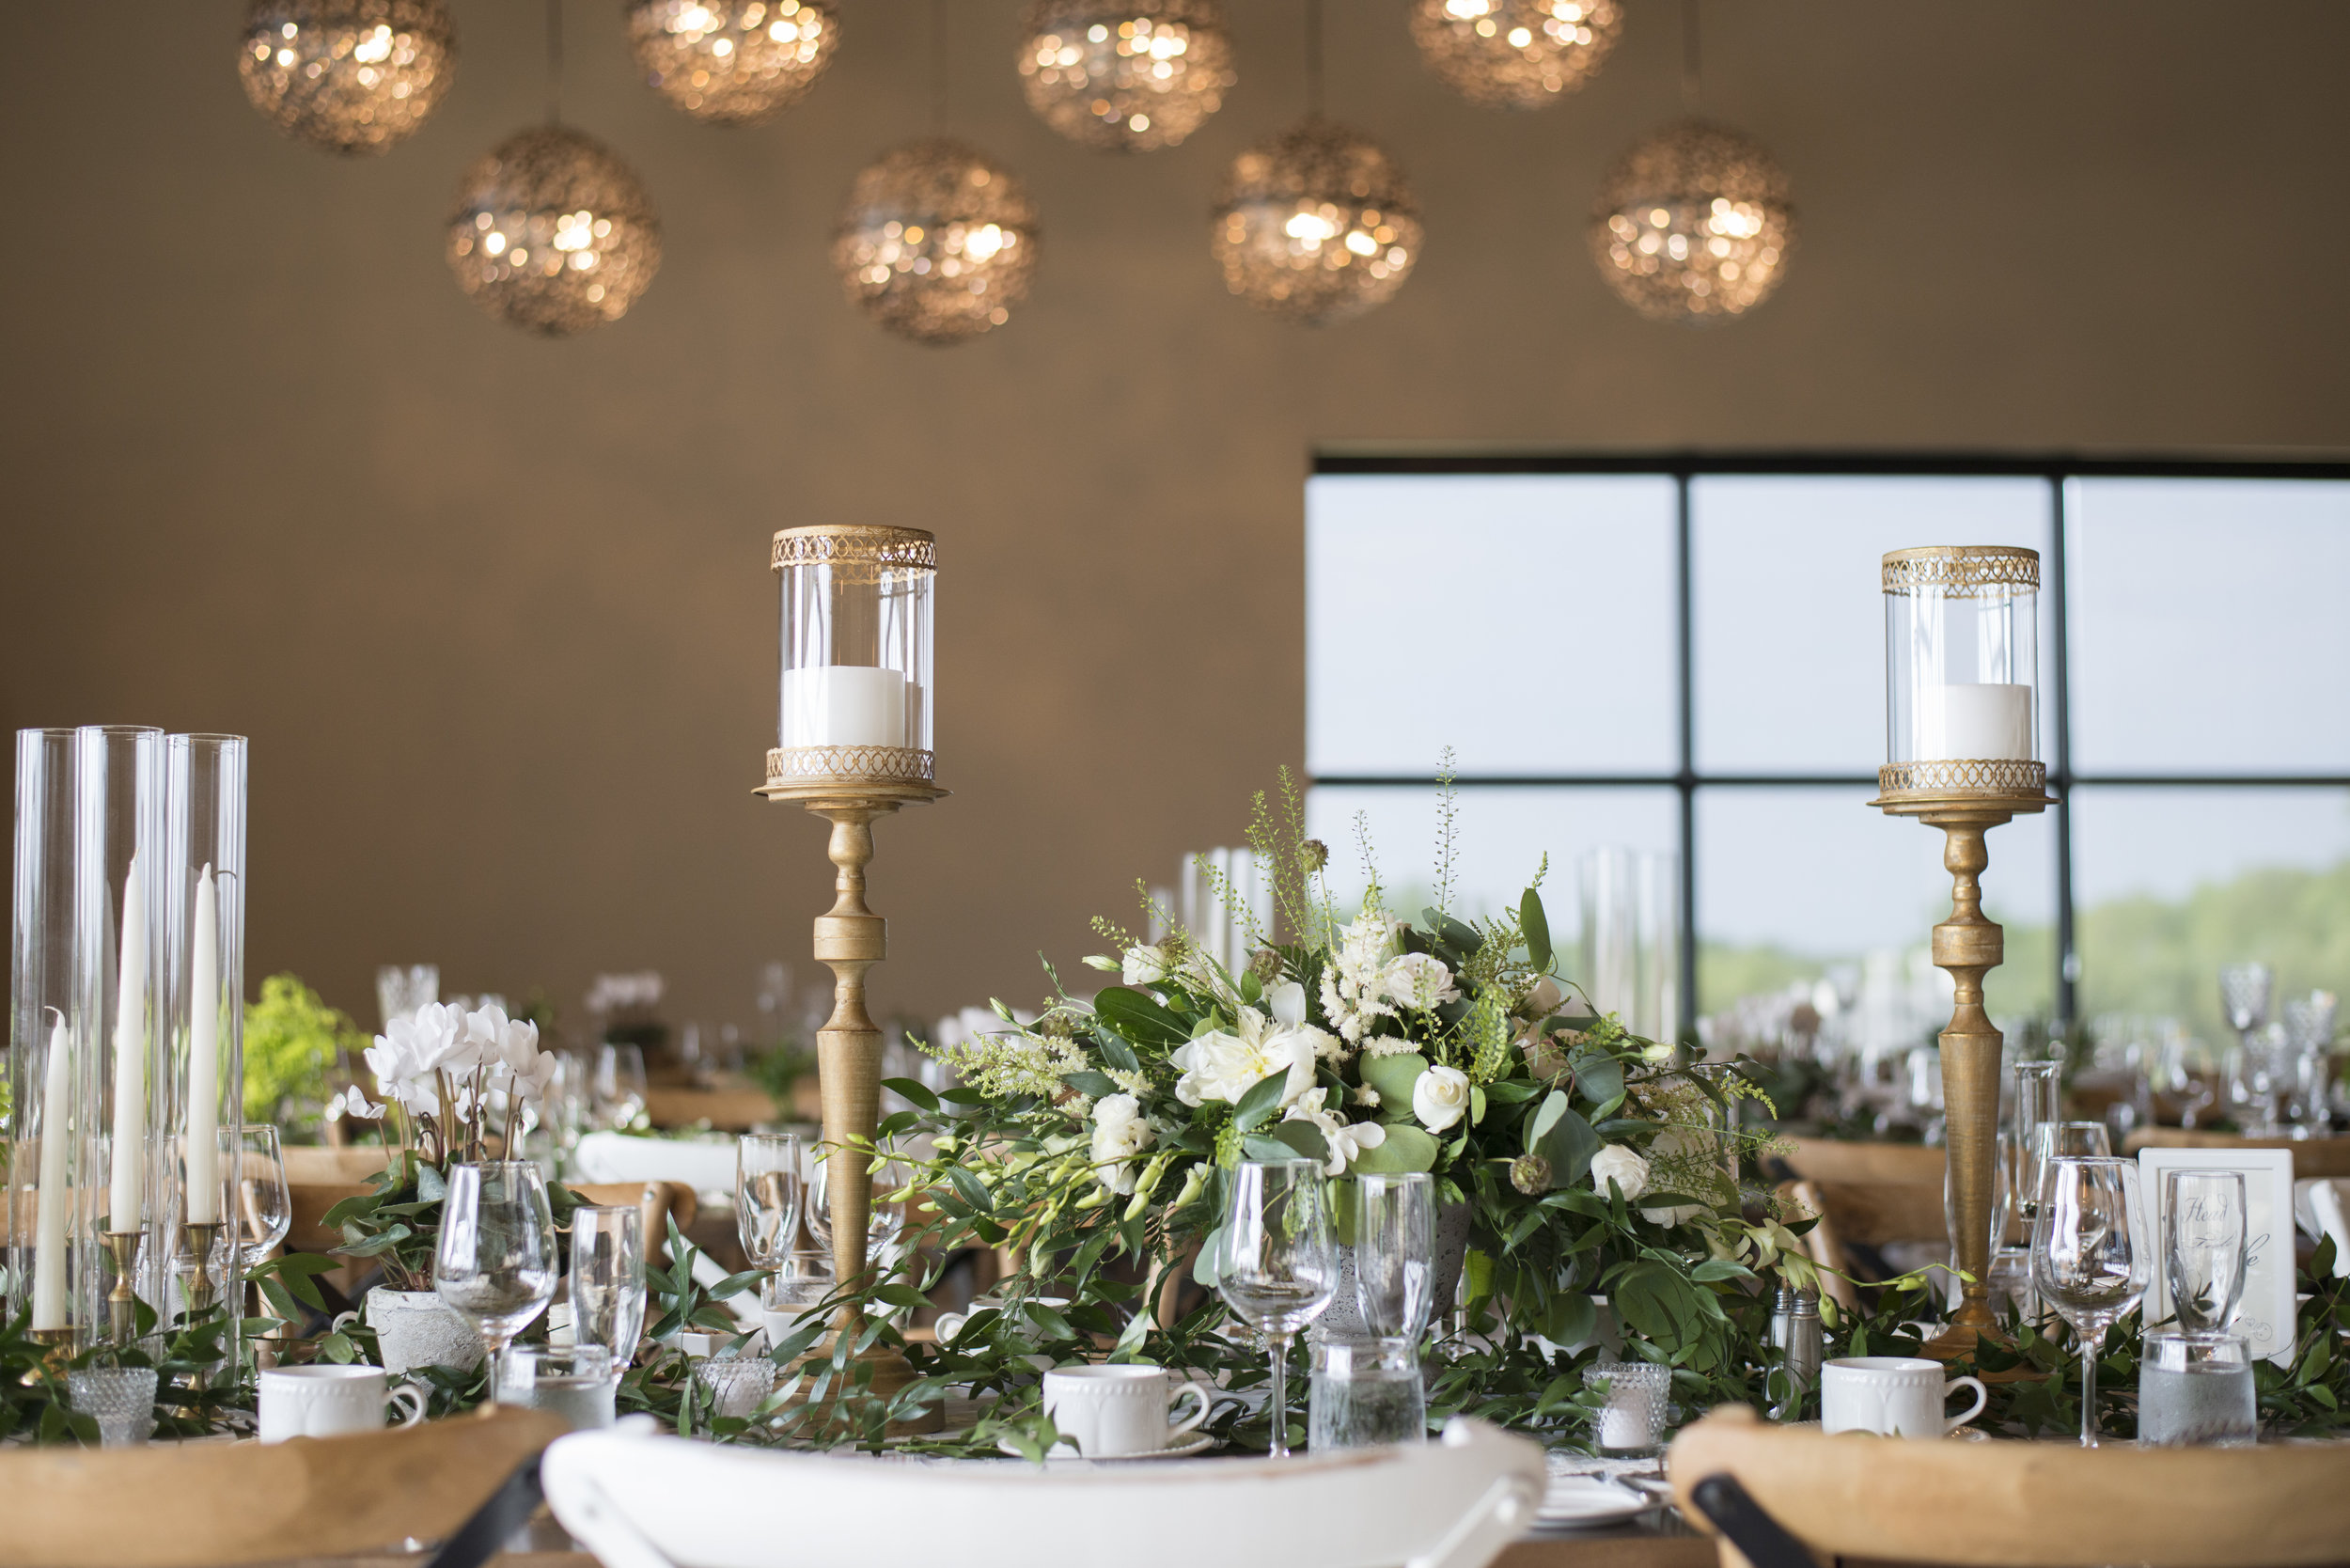 Adamo Winery Wedding - Greenery and White with a Tuscan twist for this Hockley Valley Wedding